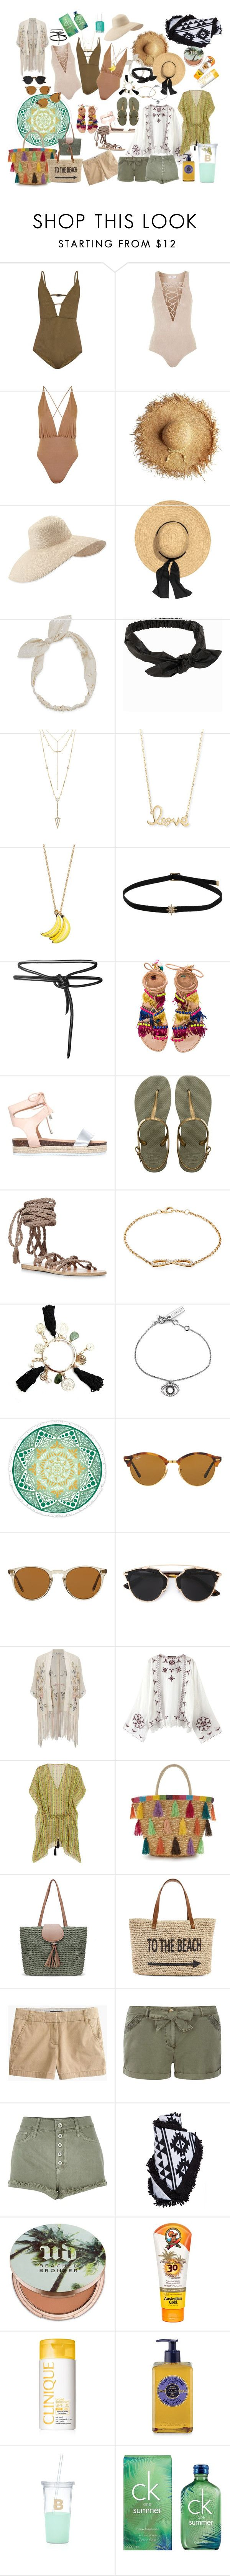 SWIMSUIT by veronic-s on Polyvore featuring Matthew Williamson, Topshop, Zimmermann, J.Crew, River Island, Miss Selfridge, Dorothy Perkins, Relaxfeel, Ancient Greek Sandals and Elina Linardaki